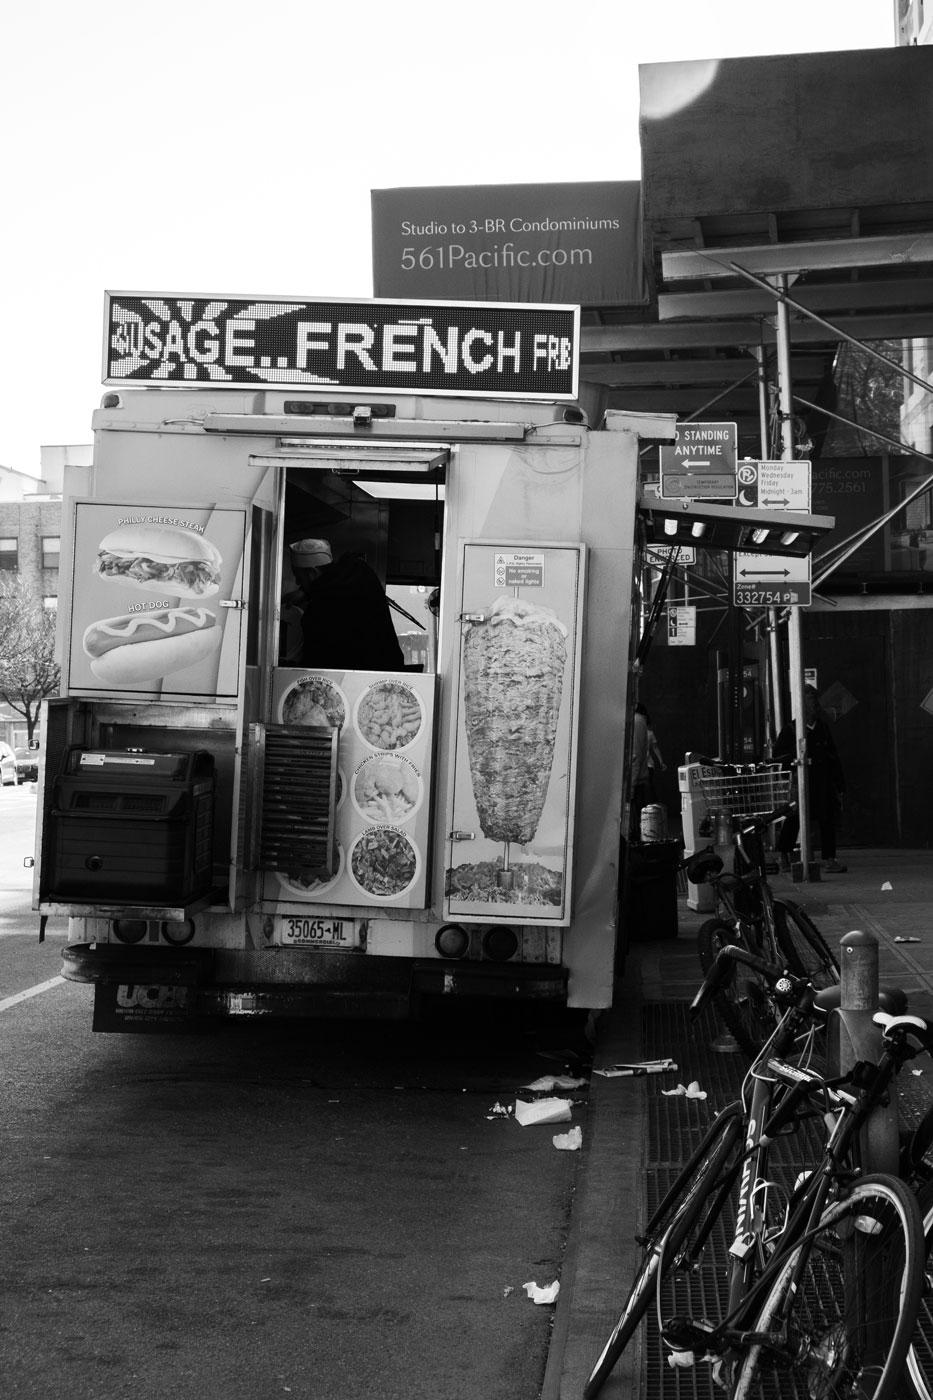 a food truck parked on a street in brooklyn